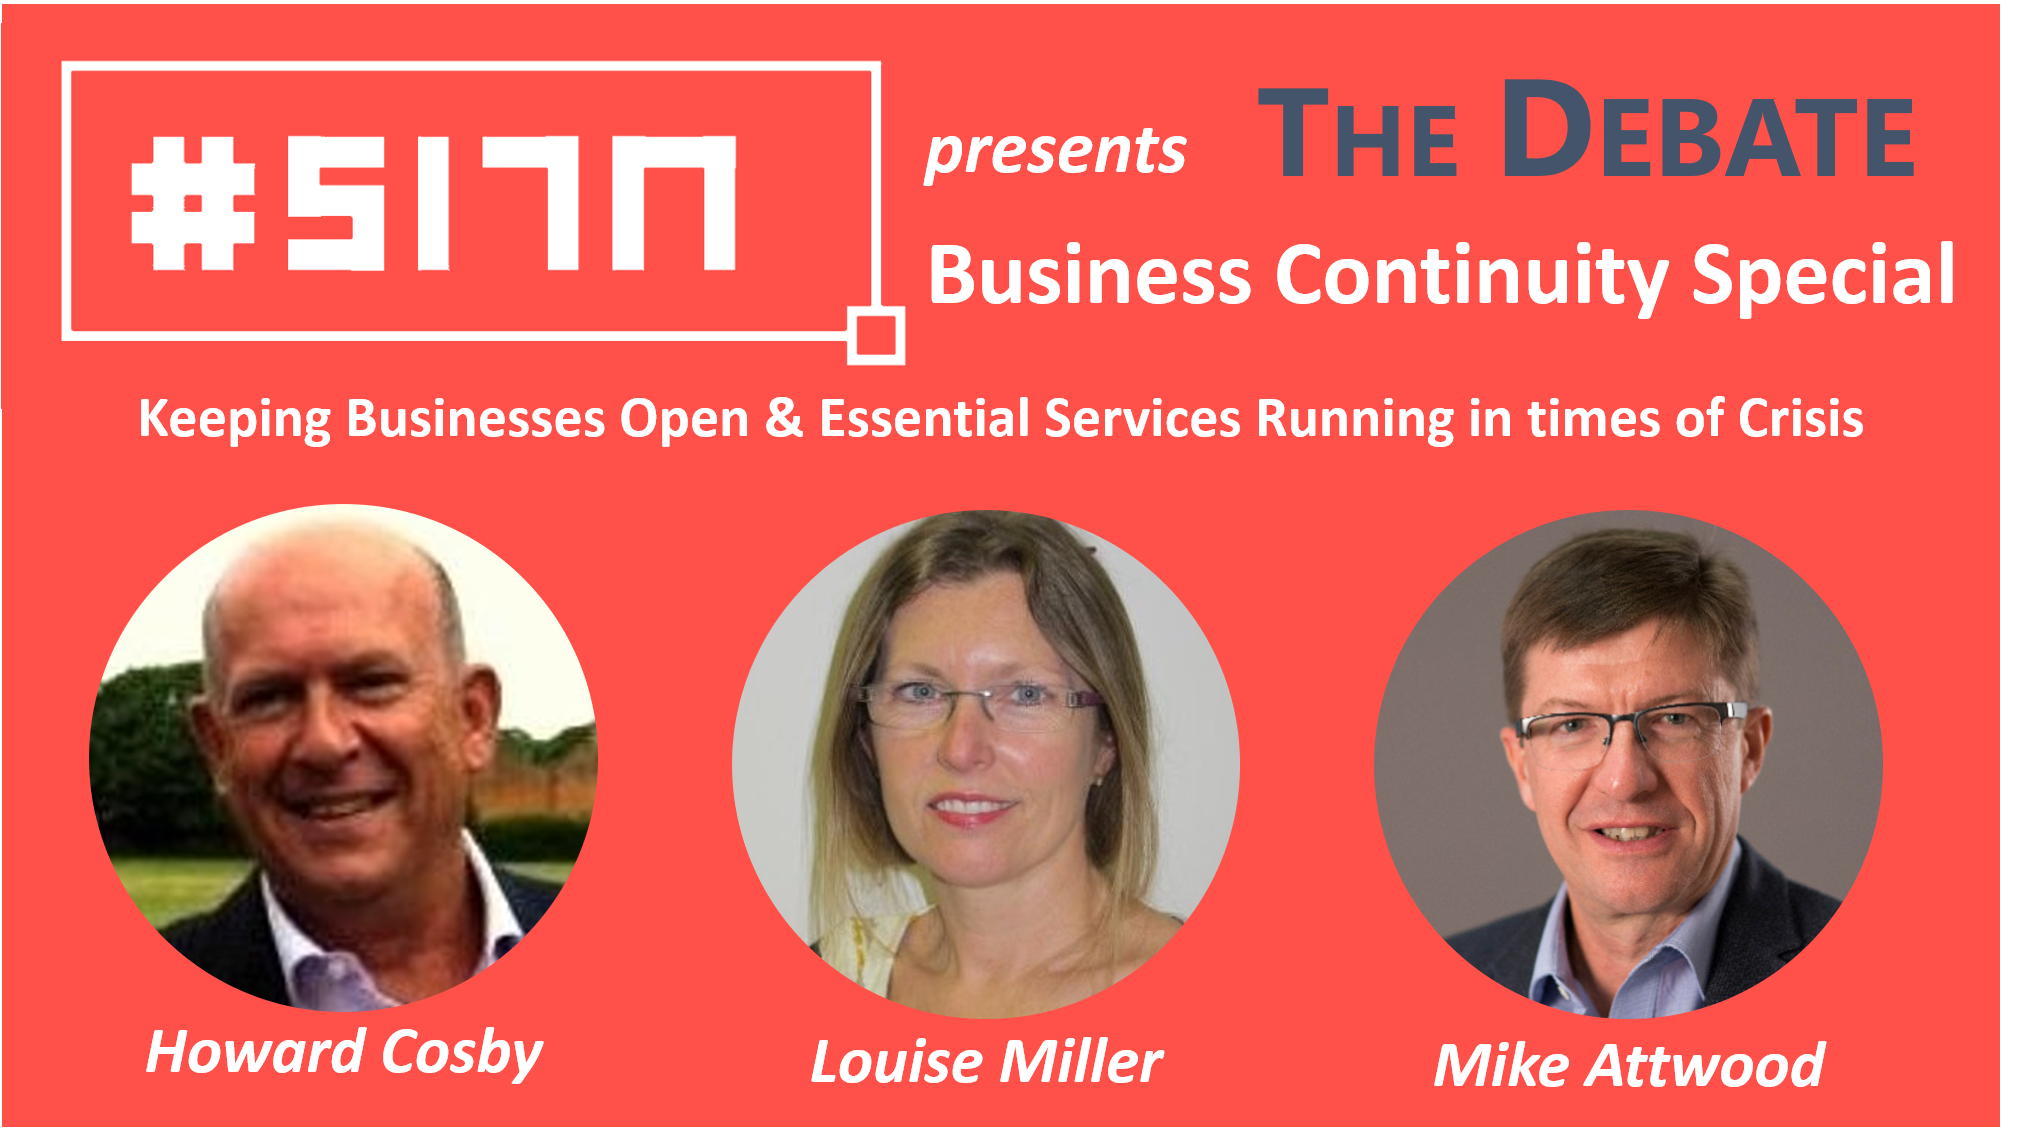 #254: THE DEBATE: Keeping Businesses Open & Services Going During A Crisis